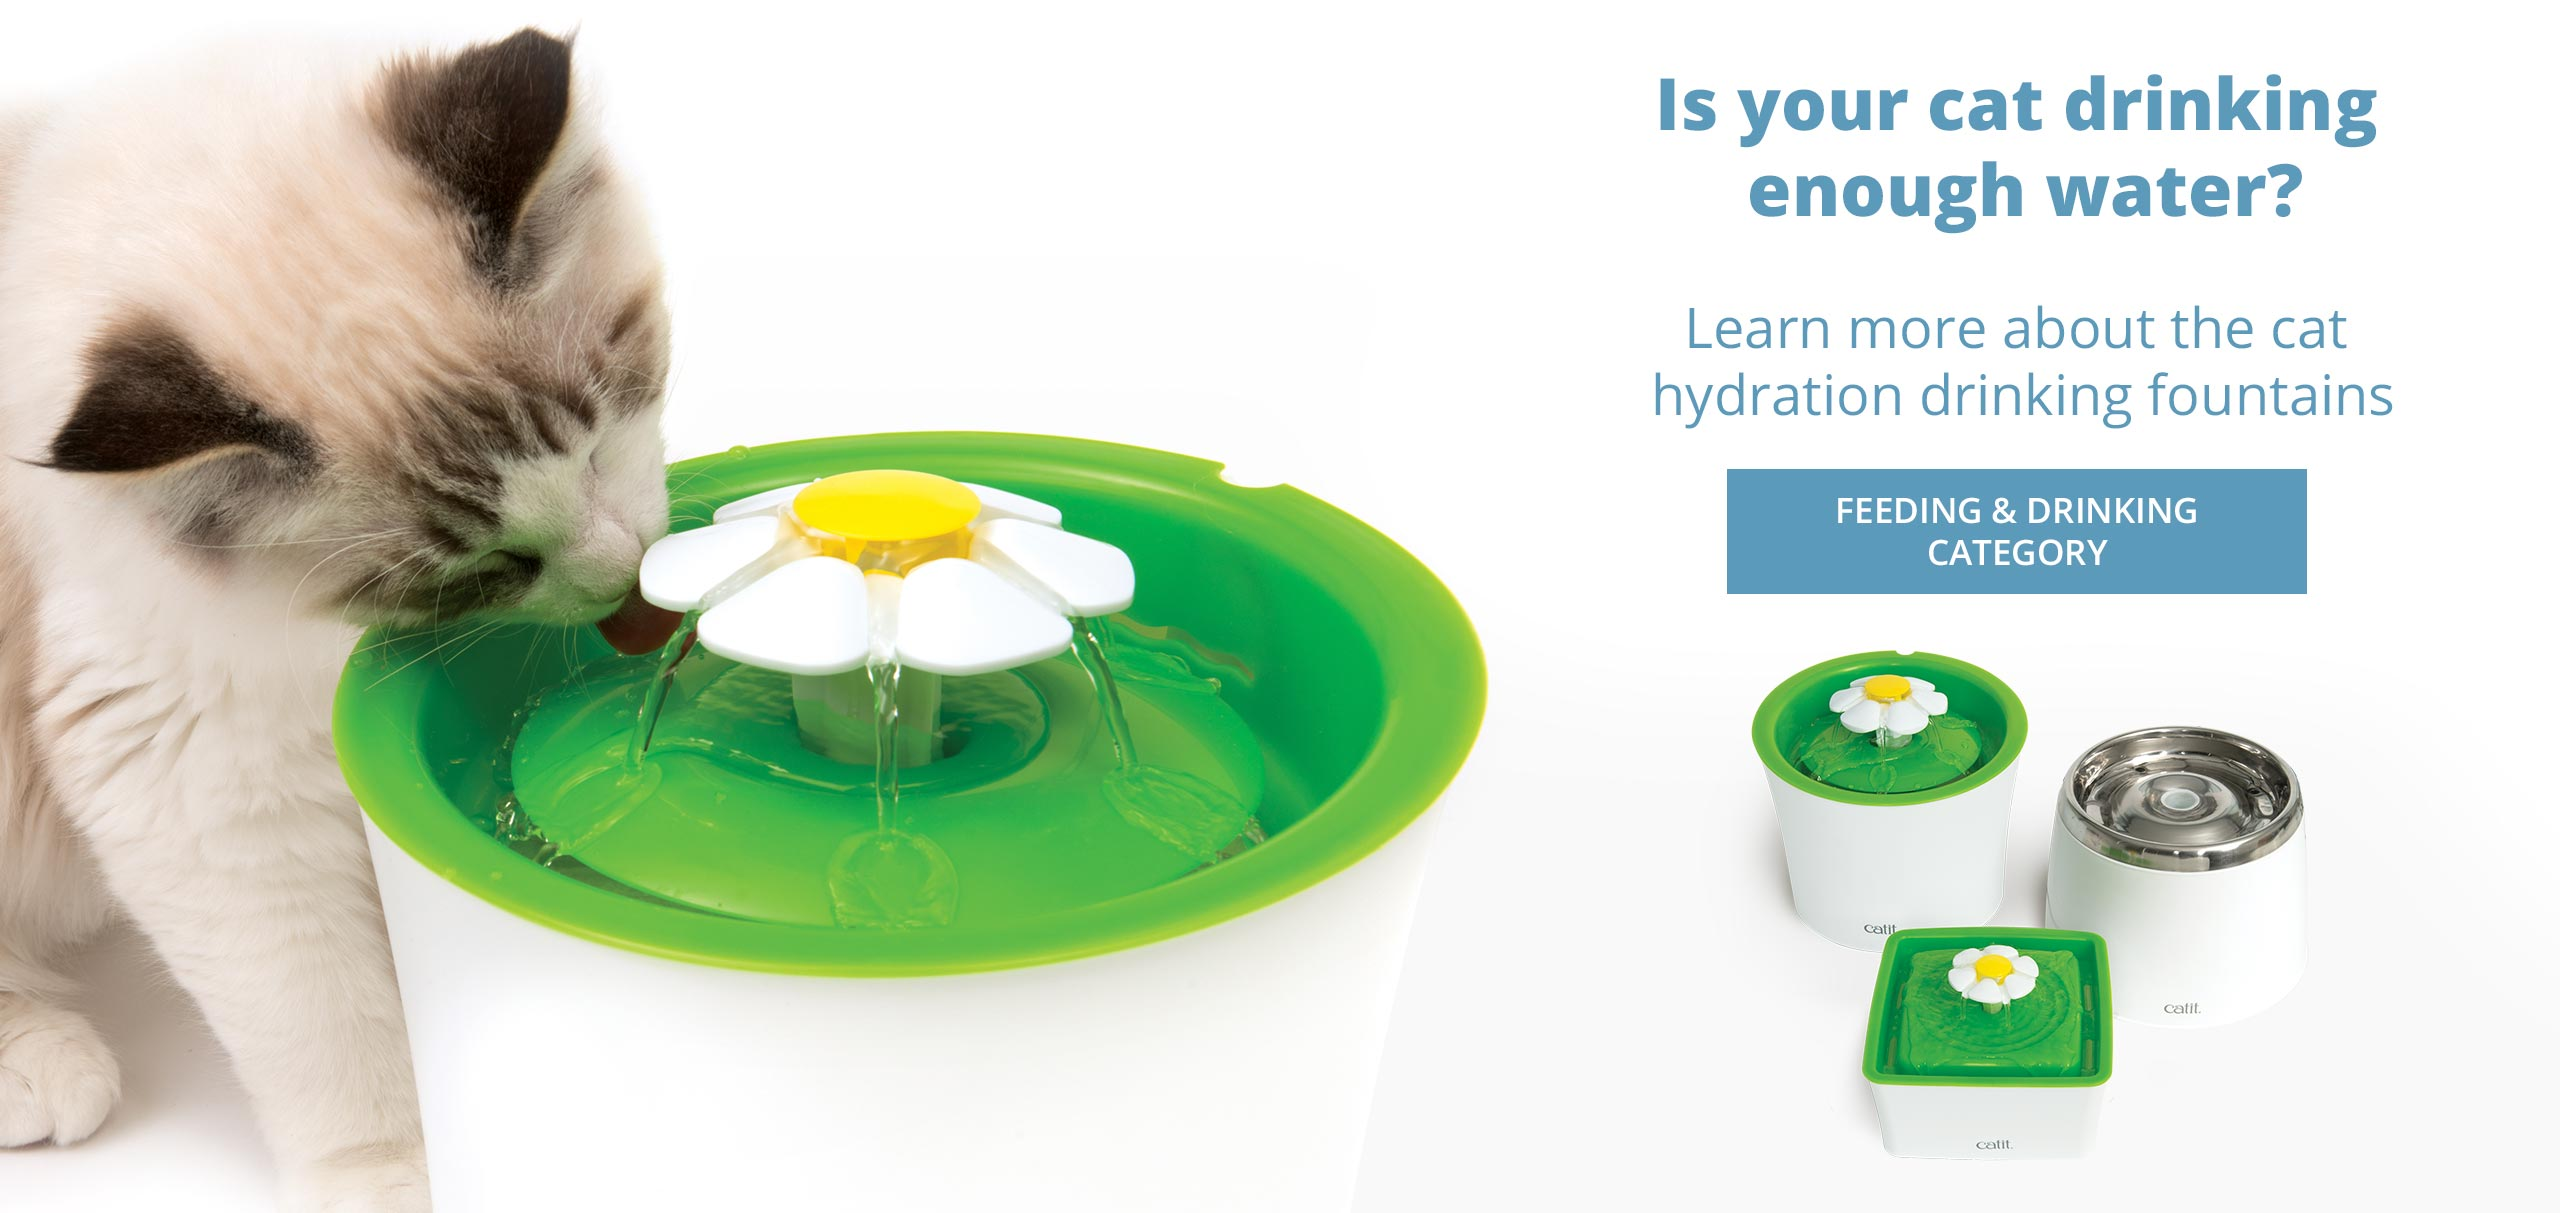 Learn more about the cat hydration drinking fountains-update